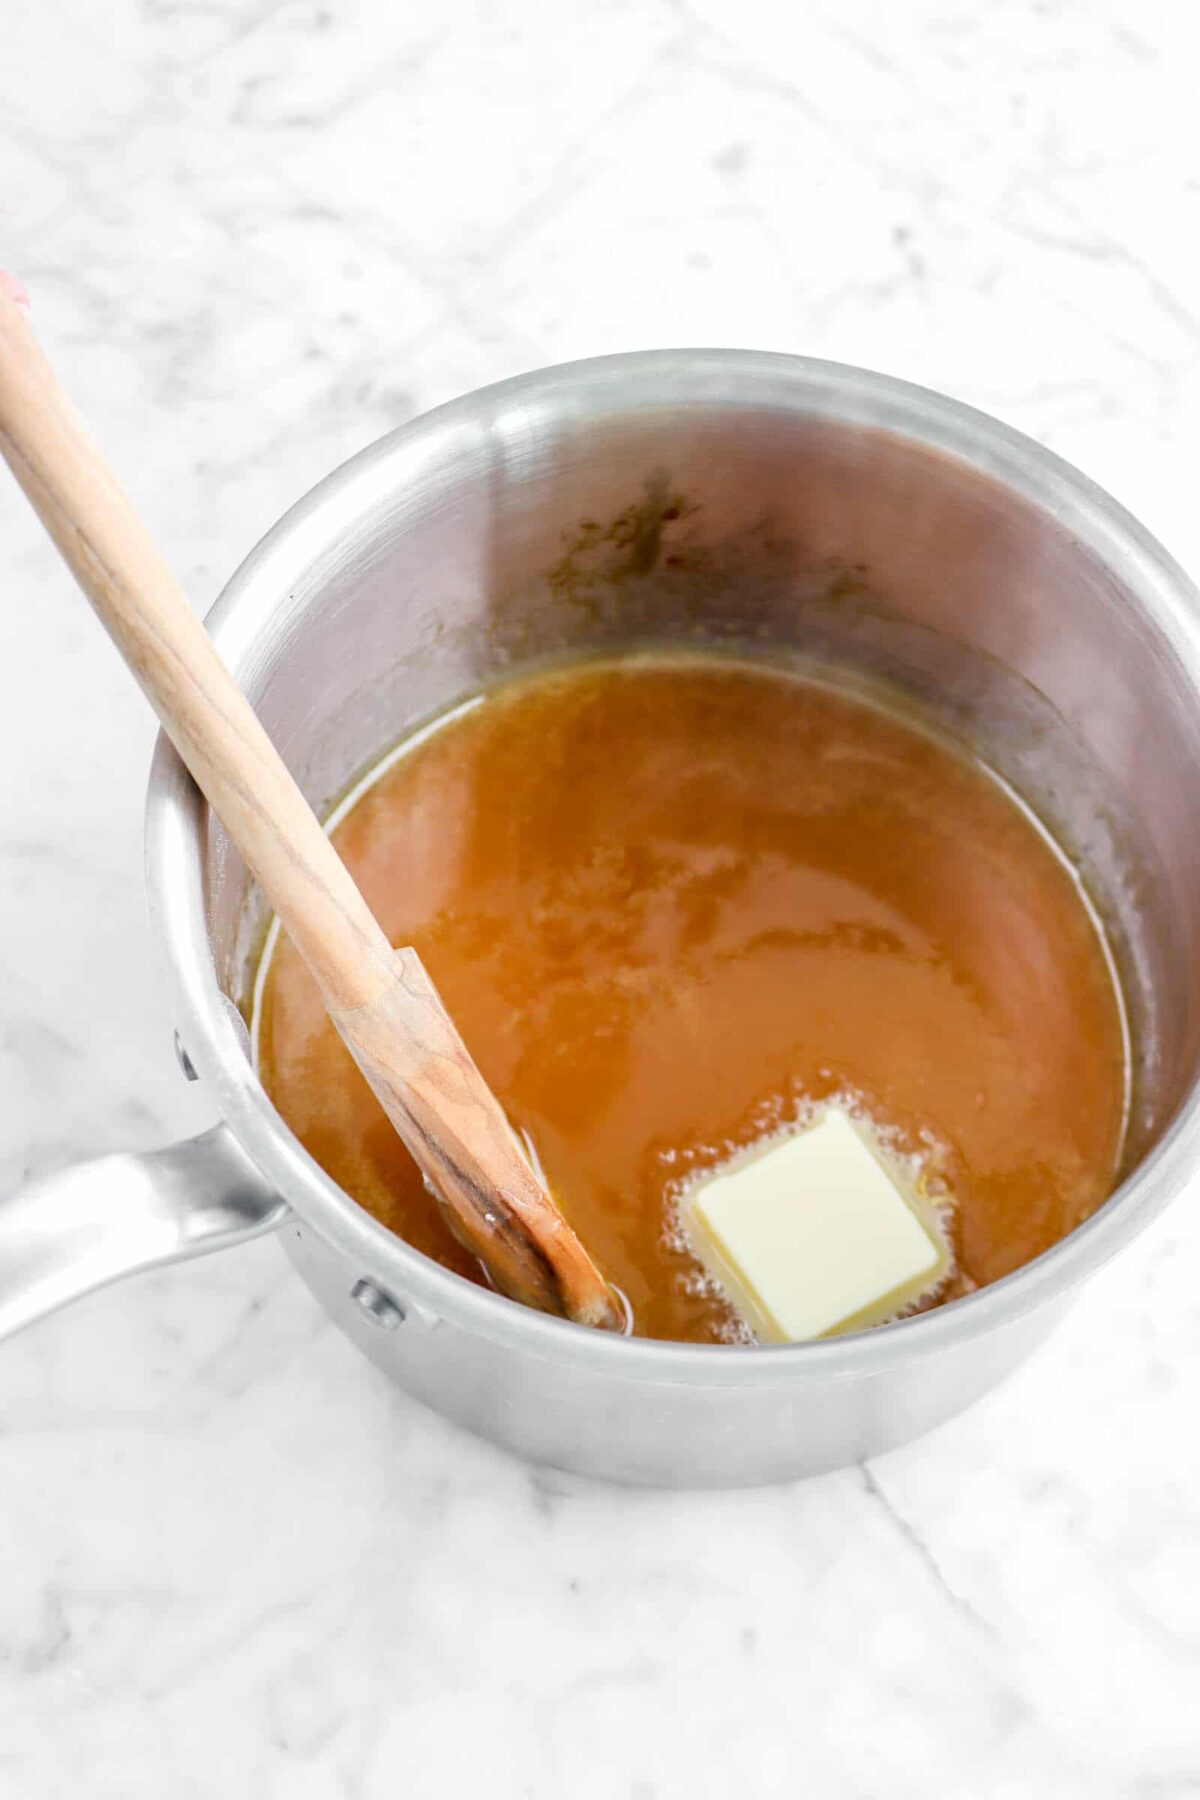 butter added to caramel